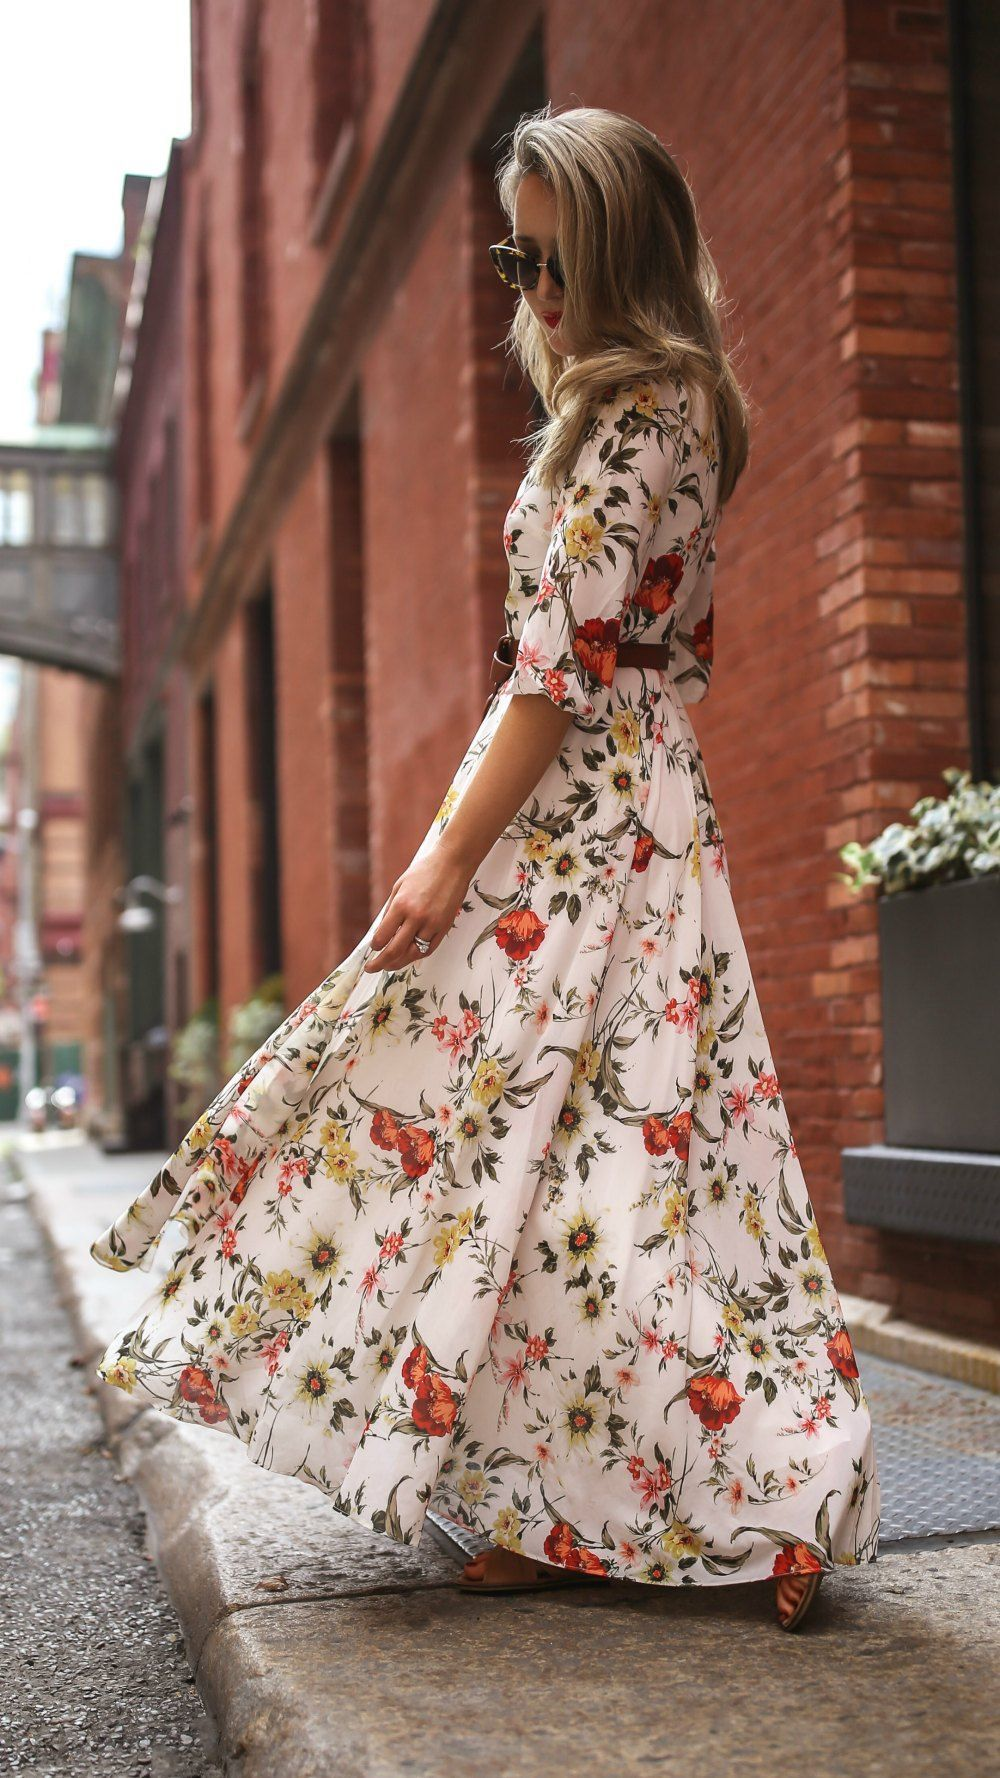 Maxi Dresses Drama Dressing Floral Print Maxi Dress With 3 4 Sleeves Brown Leather Belt Bag Large Tortoise Maxi Dress Cute Maxi Dress Floral Maxi Dress [ 1778 x 1000 Pixel ]